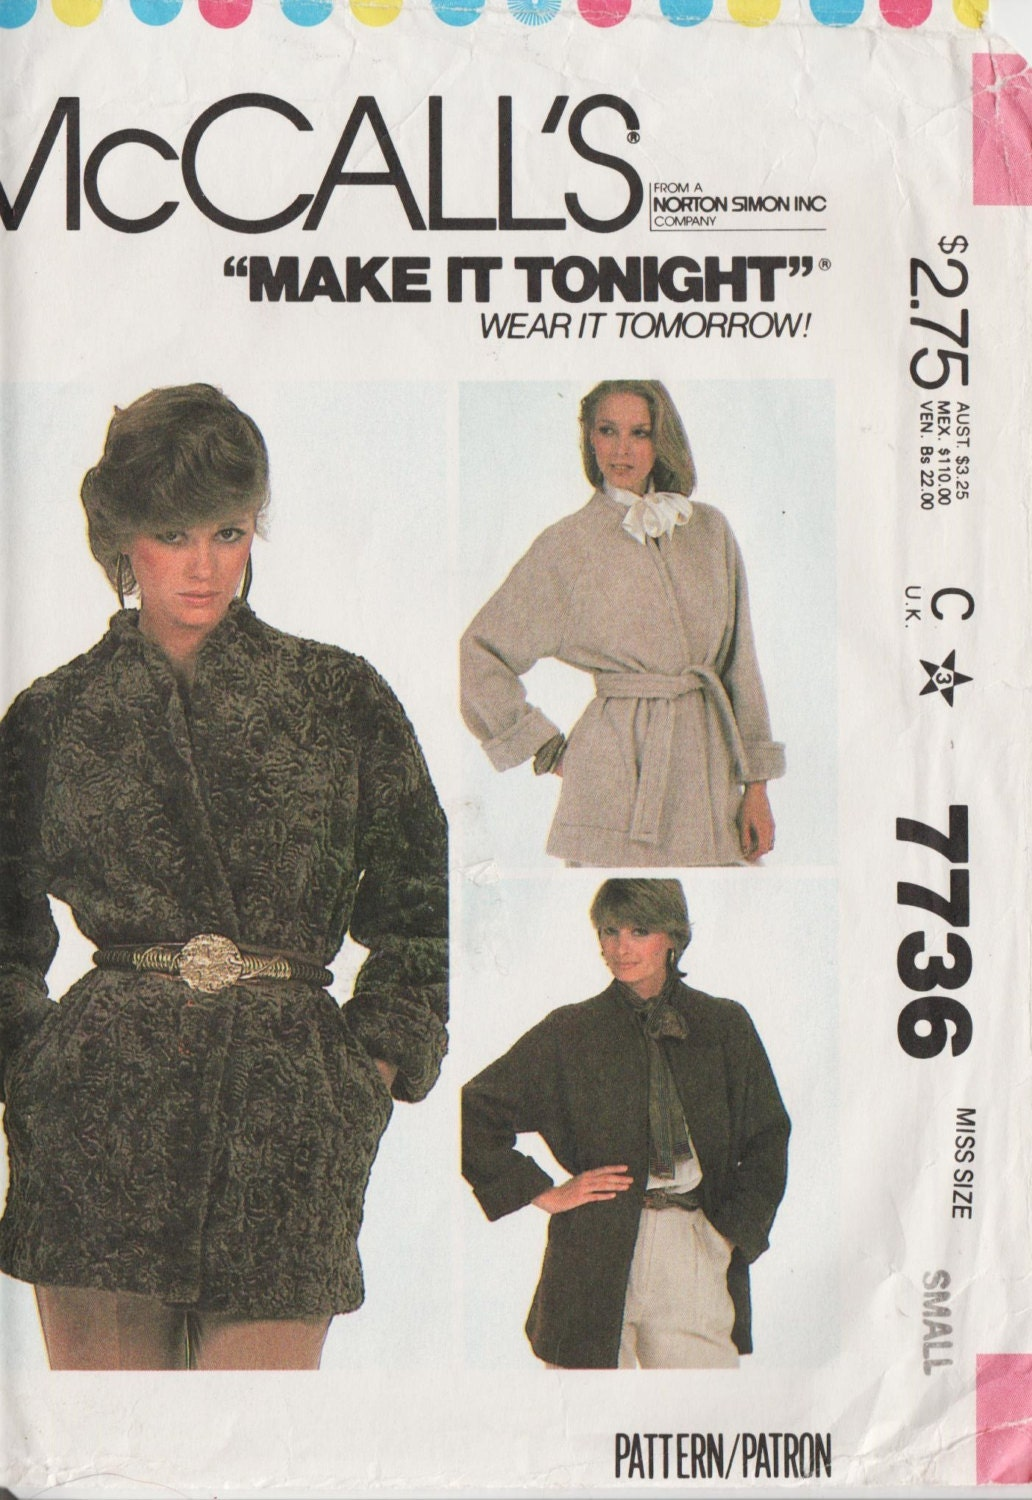 1980s jacket pattern - McCall's 7736